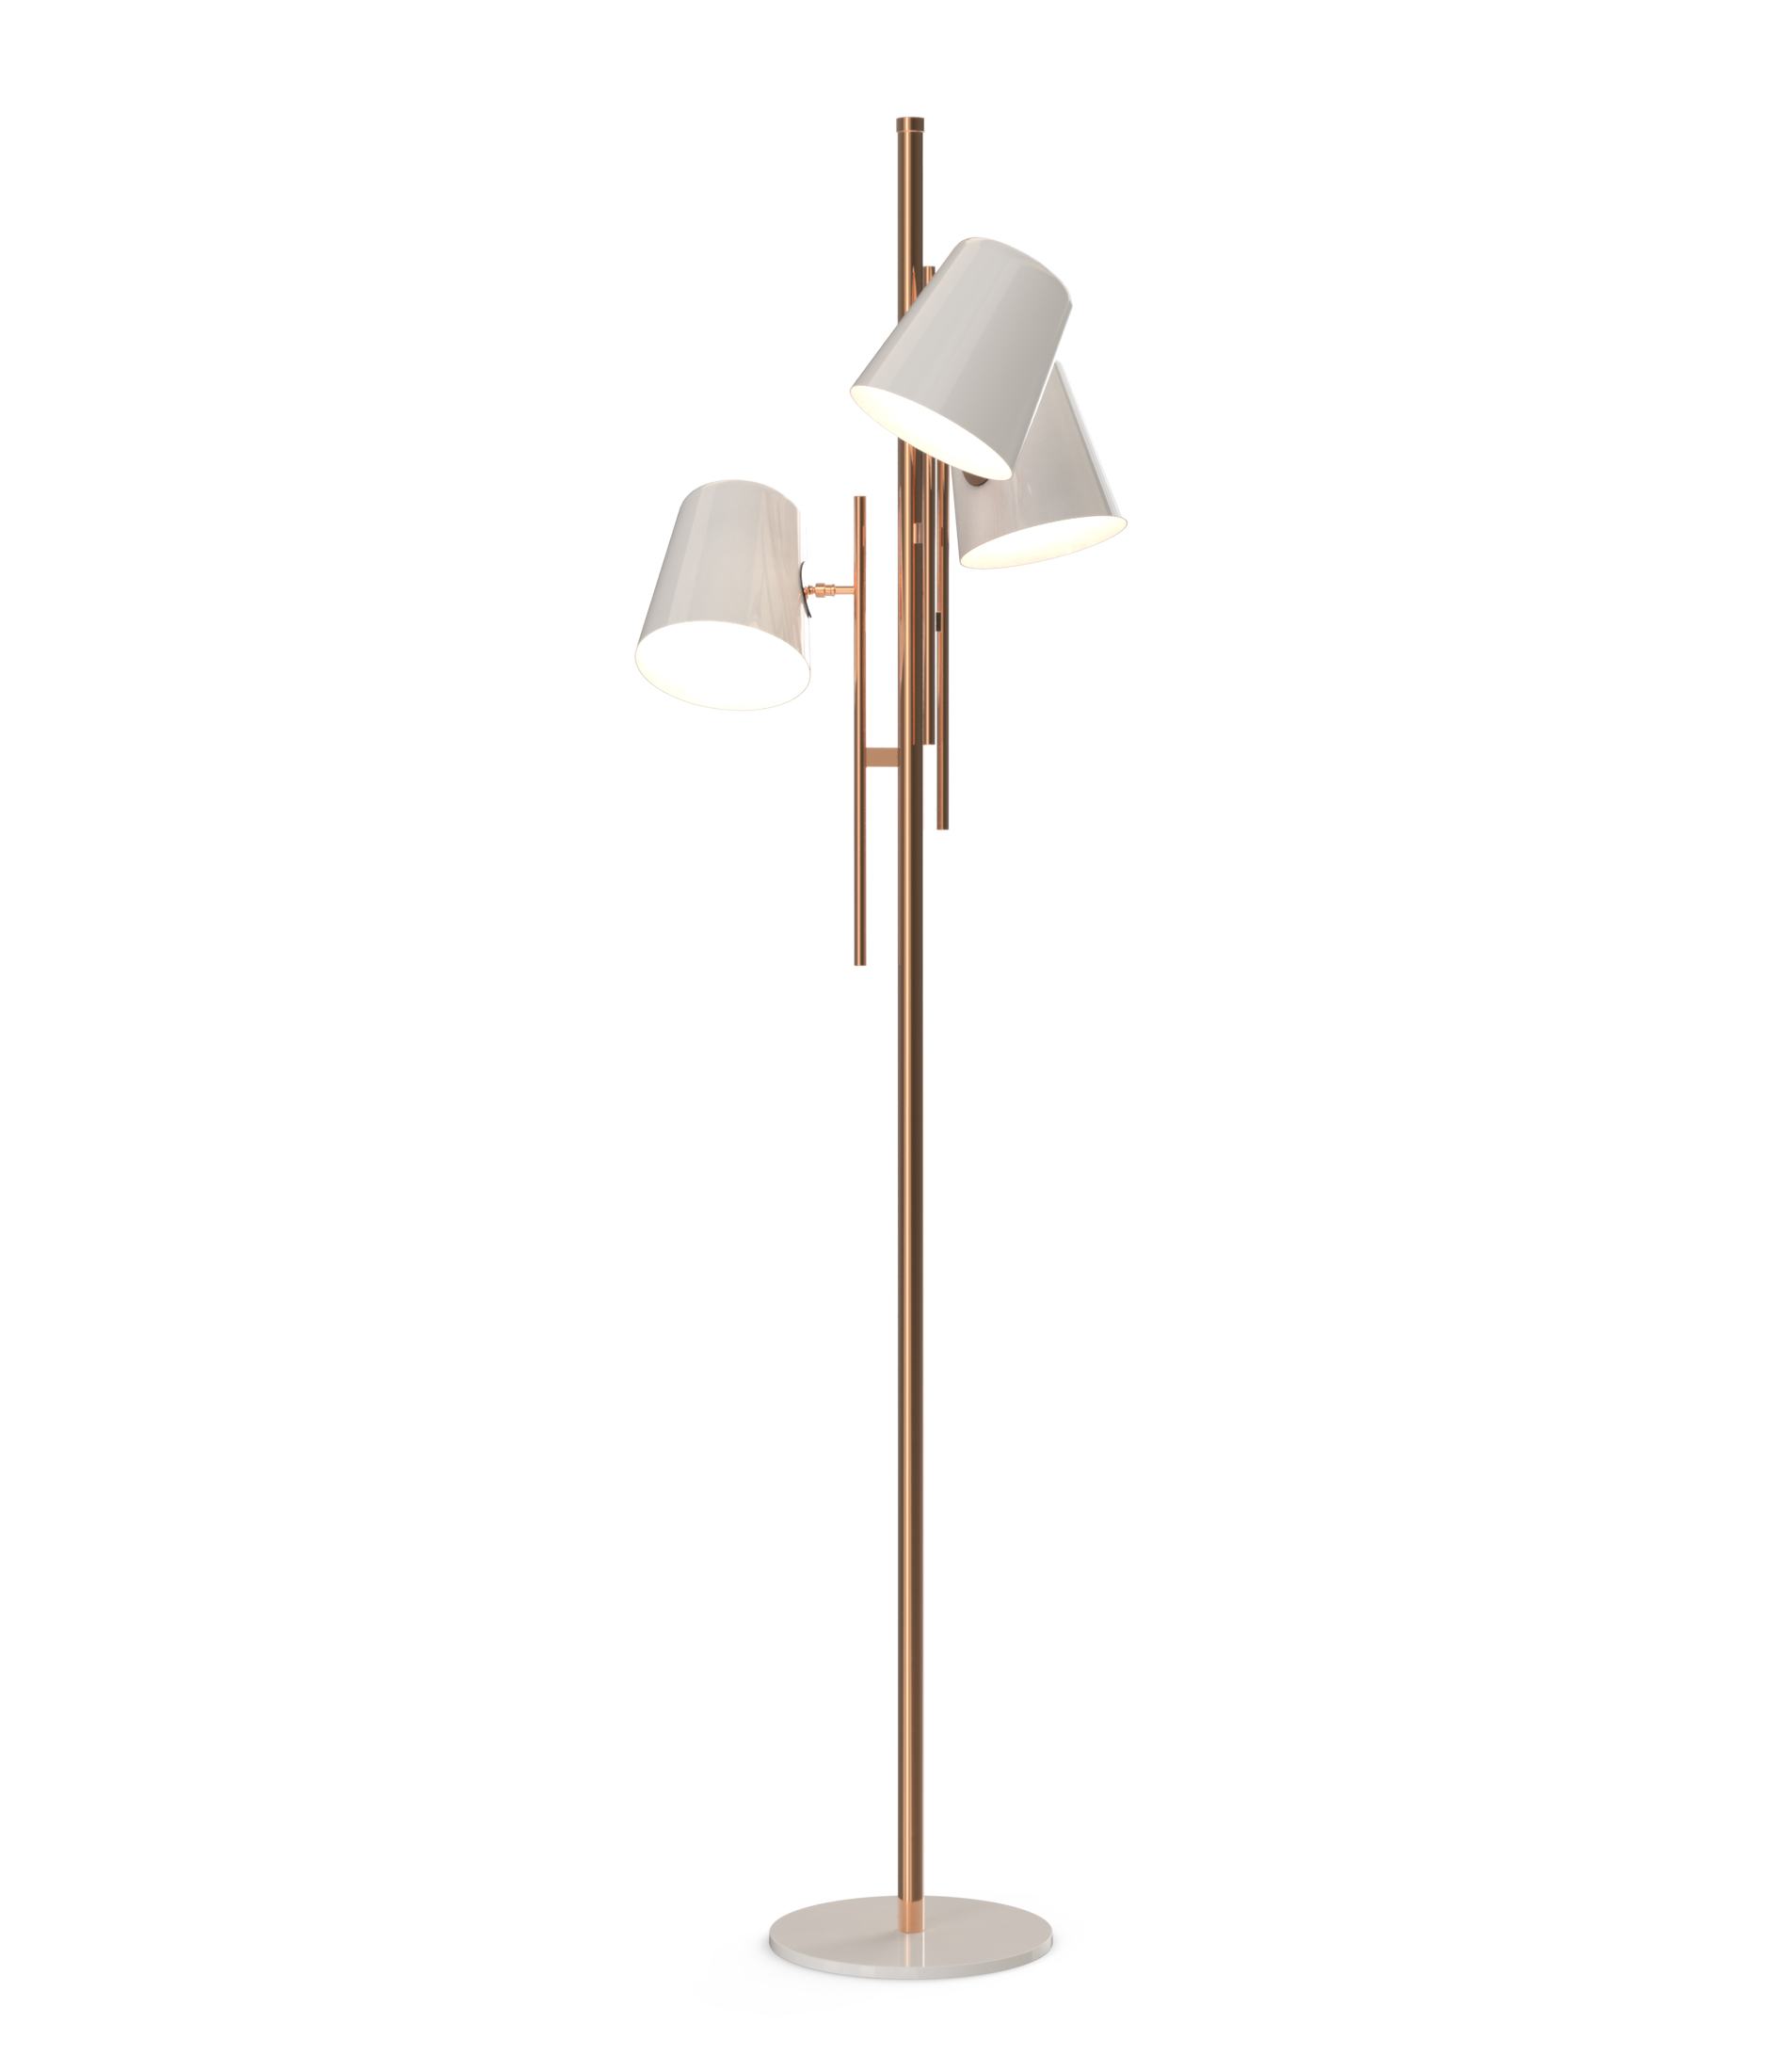 Bright Ideas A Modern Floor Lamp for a Relaxing Atmosphere 4 modern floor lamp Bright Ideas: A Modern Floor Lamp for a Relaxing Atmosphere Bright Ideas A Modern Floor Lamp for a Relaxing Atmosphere 4